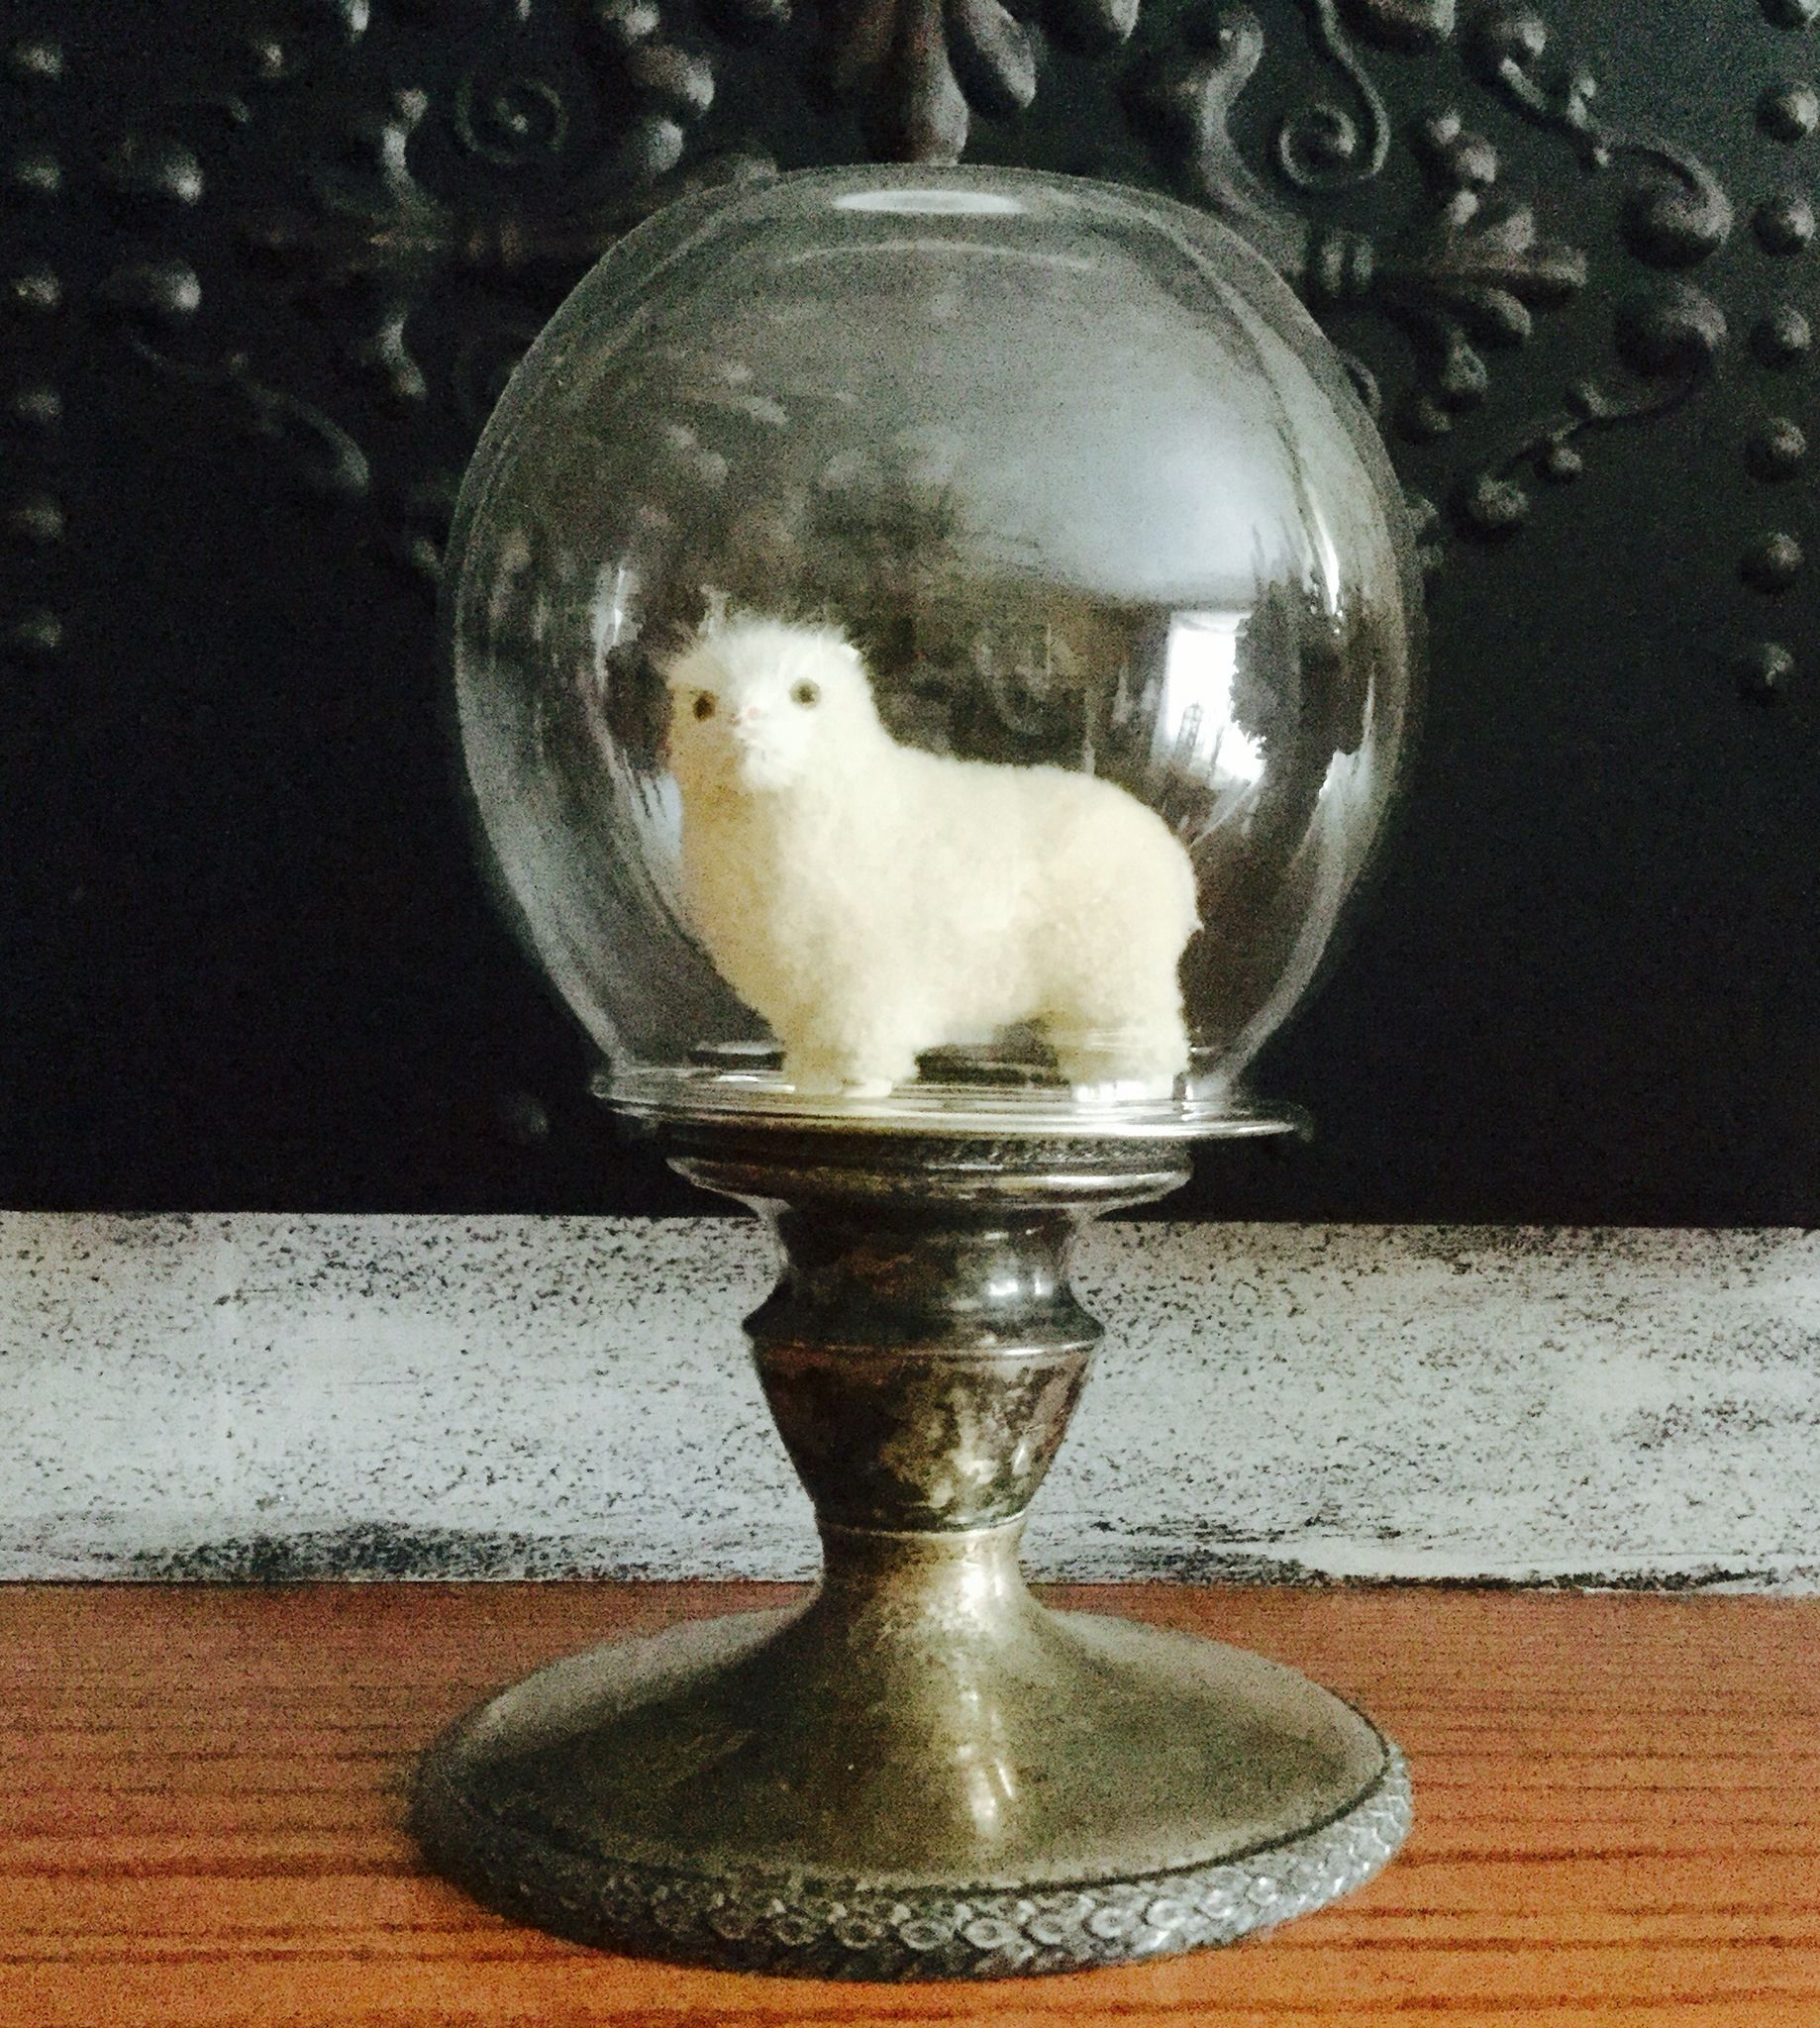 Sheep under glass by me Deb P